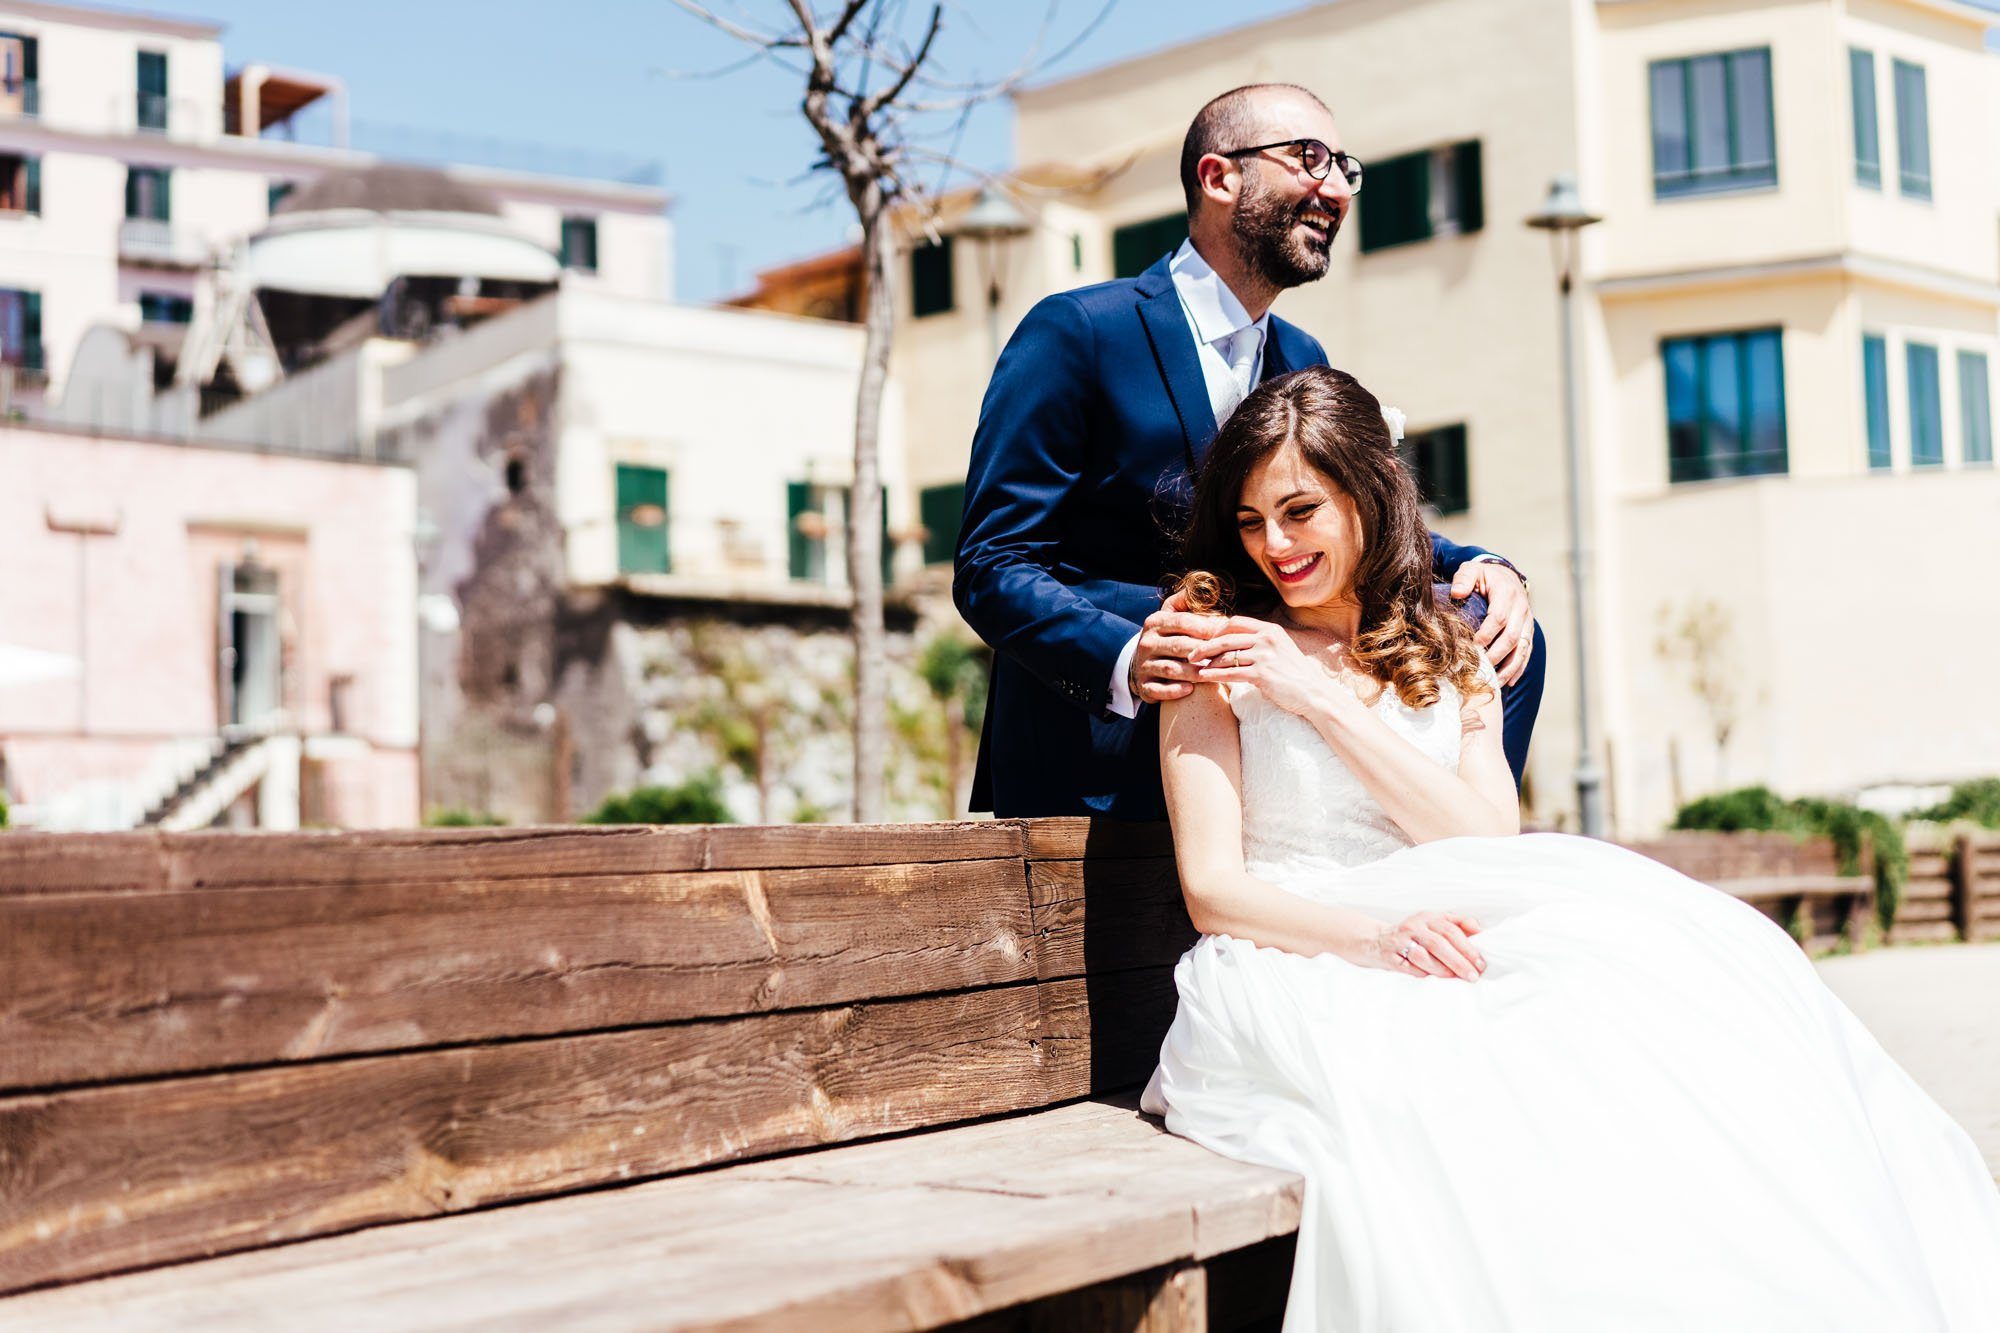 wedding-in-italy-mary-mimmo-41